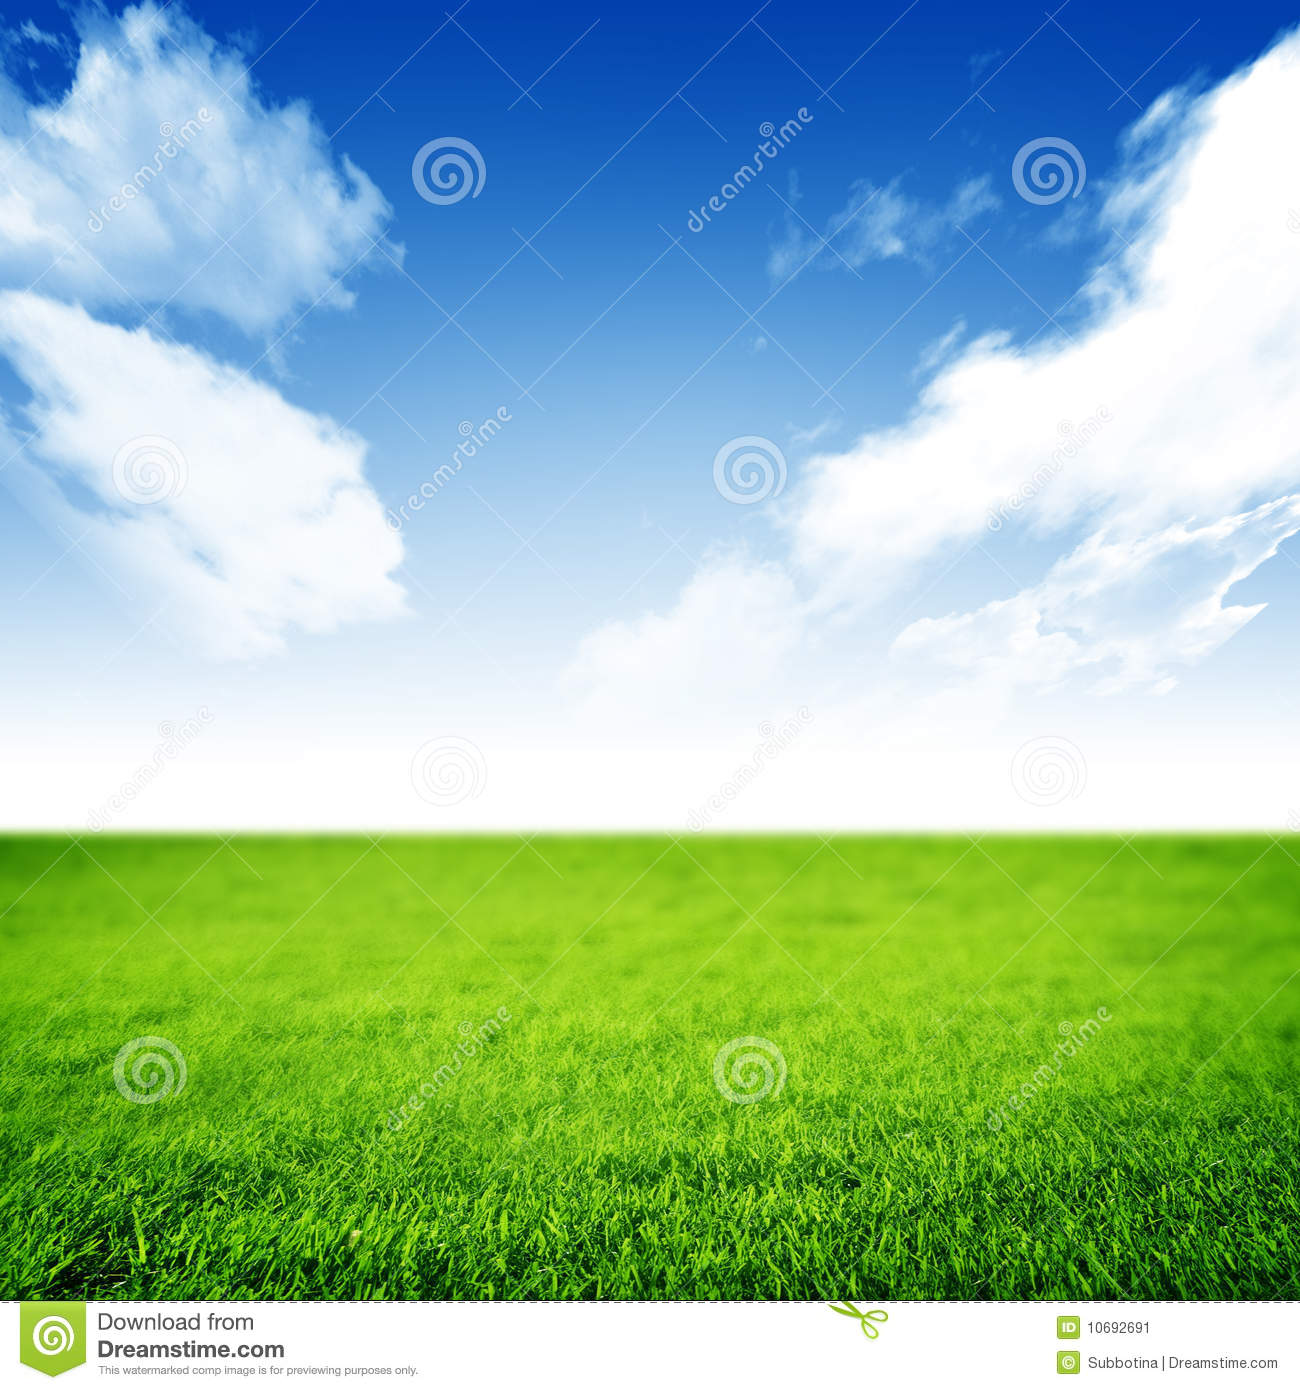 nature background stock image  image of color  clouds